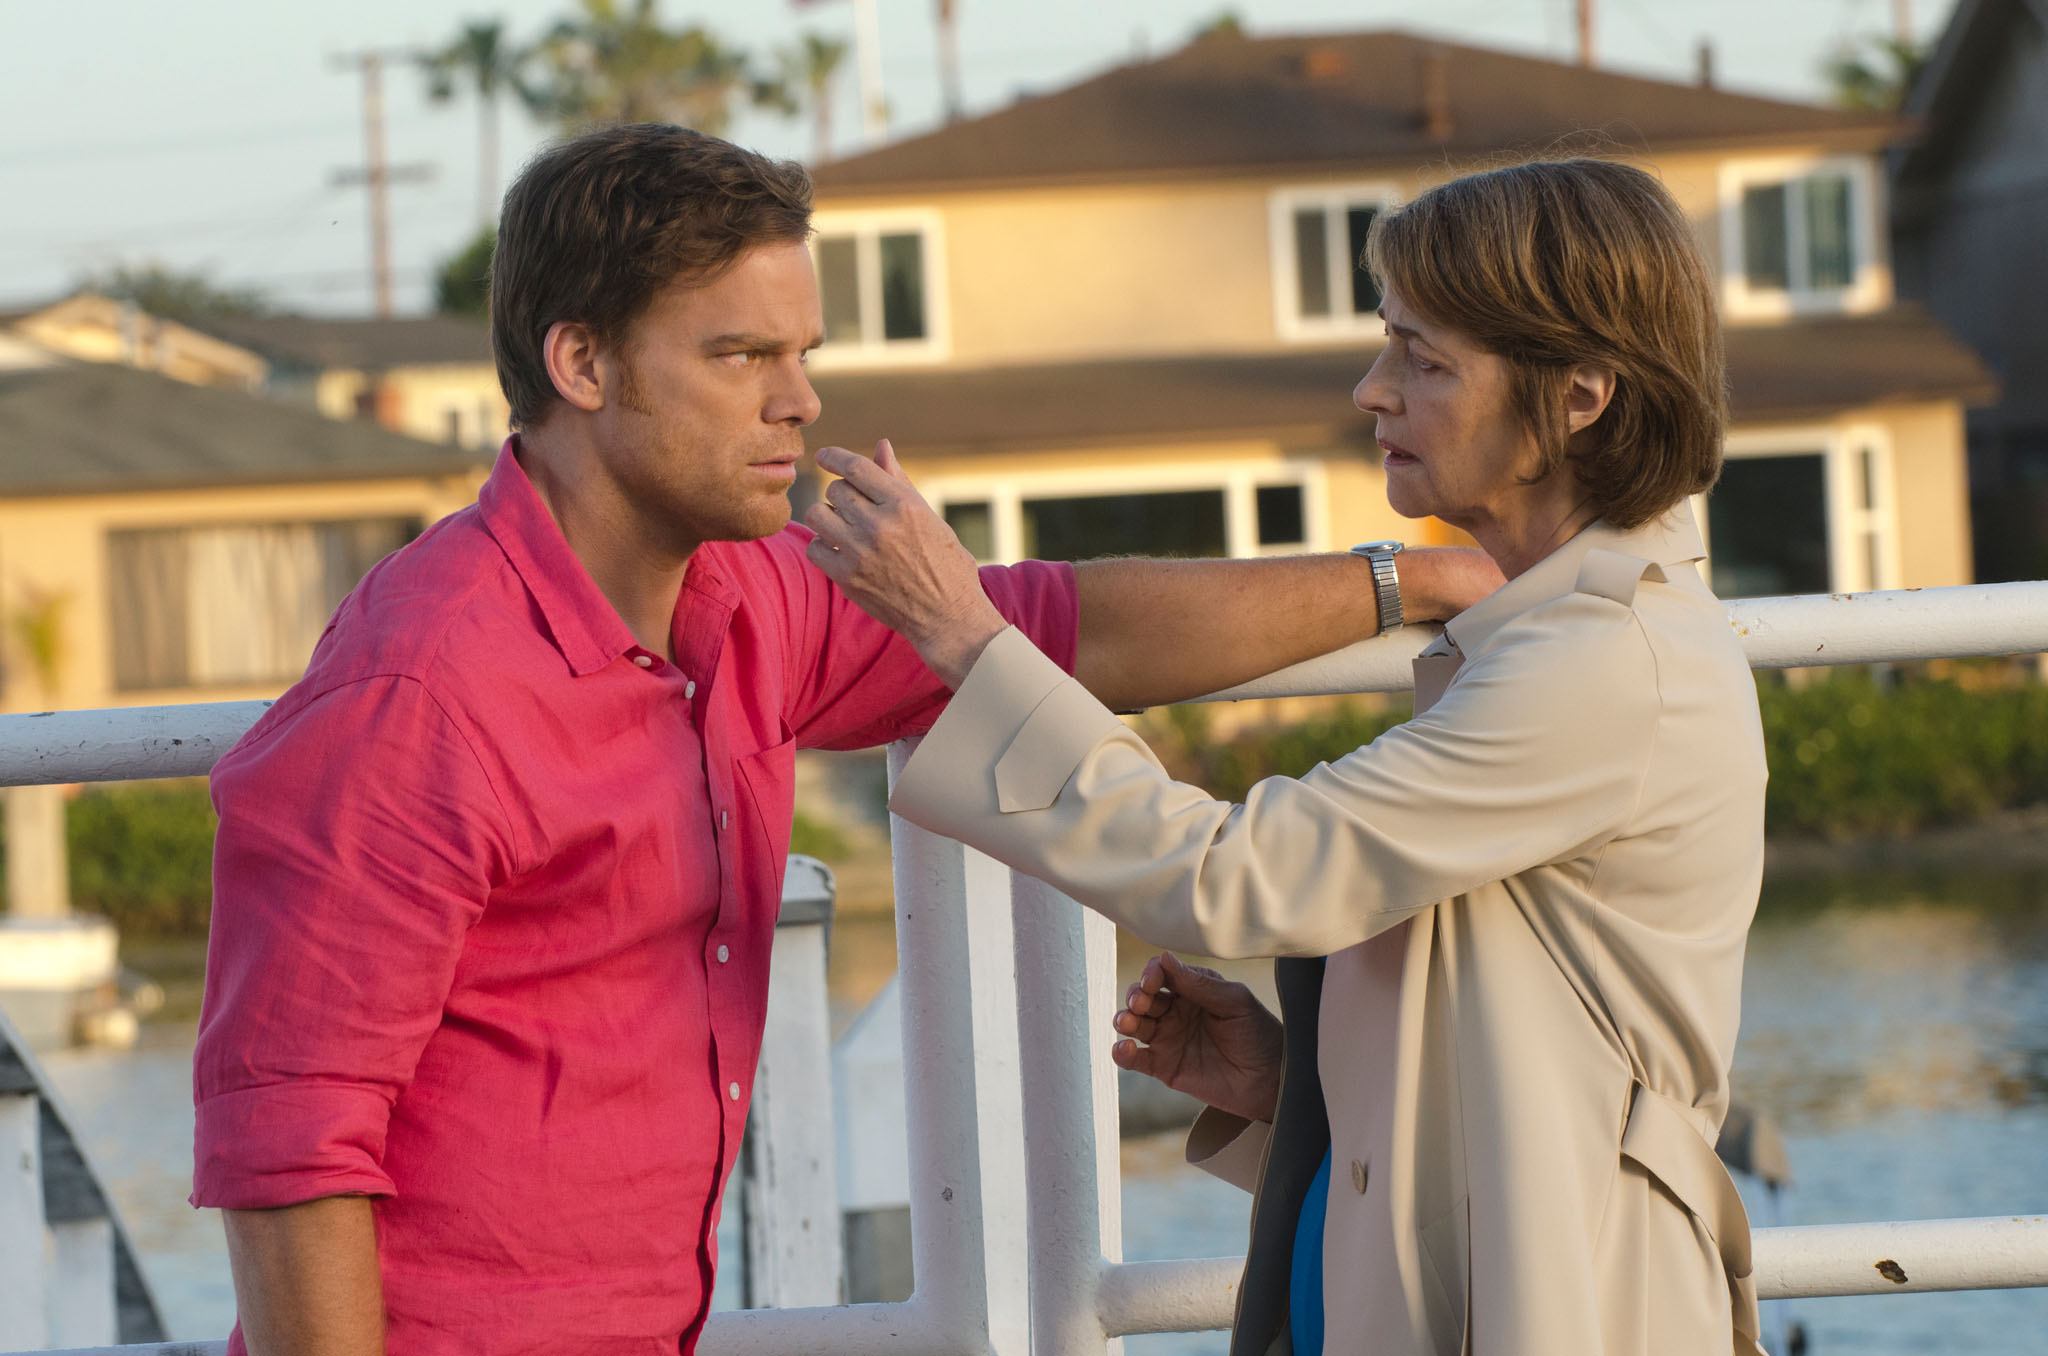 Michael C. Hall as Dexter Morgan and Charlotte Rampling as Dr. Vogel in the 'Dexter' Season 8 episode, 'Are We There Yet?'